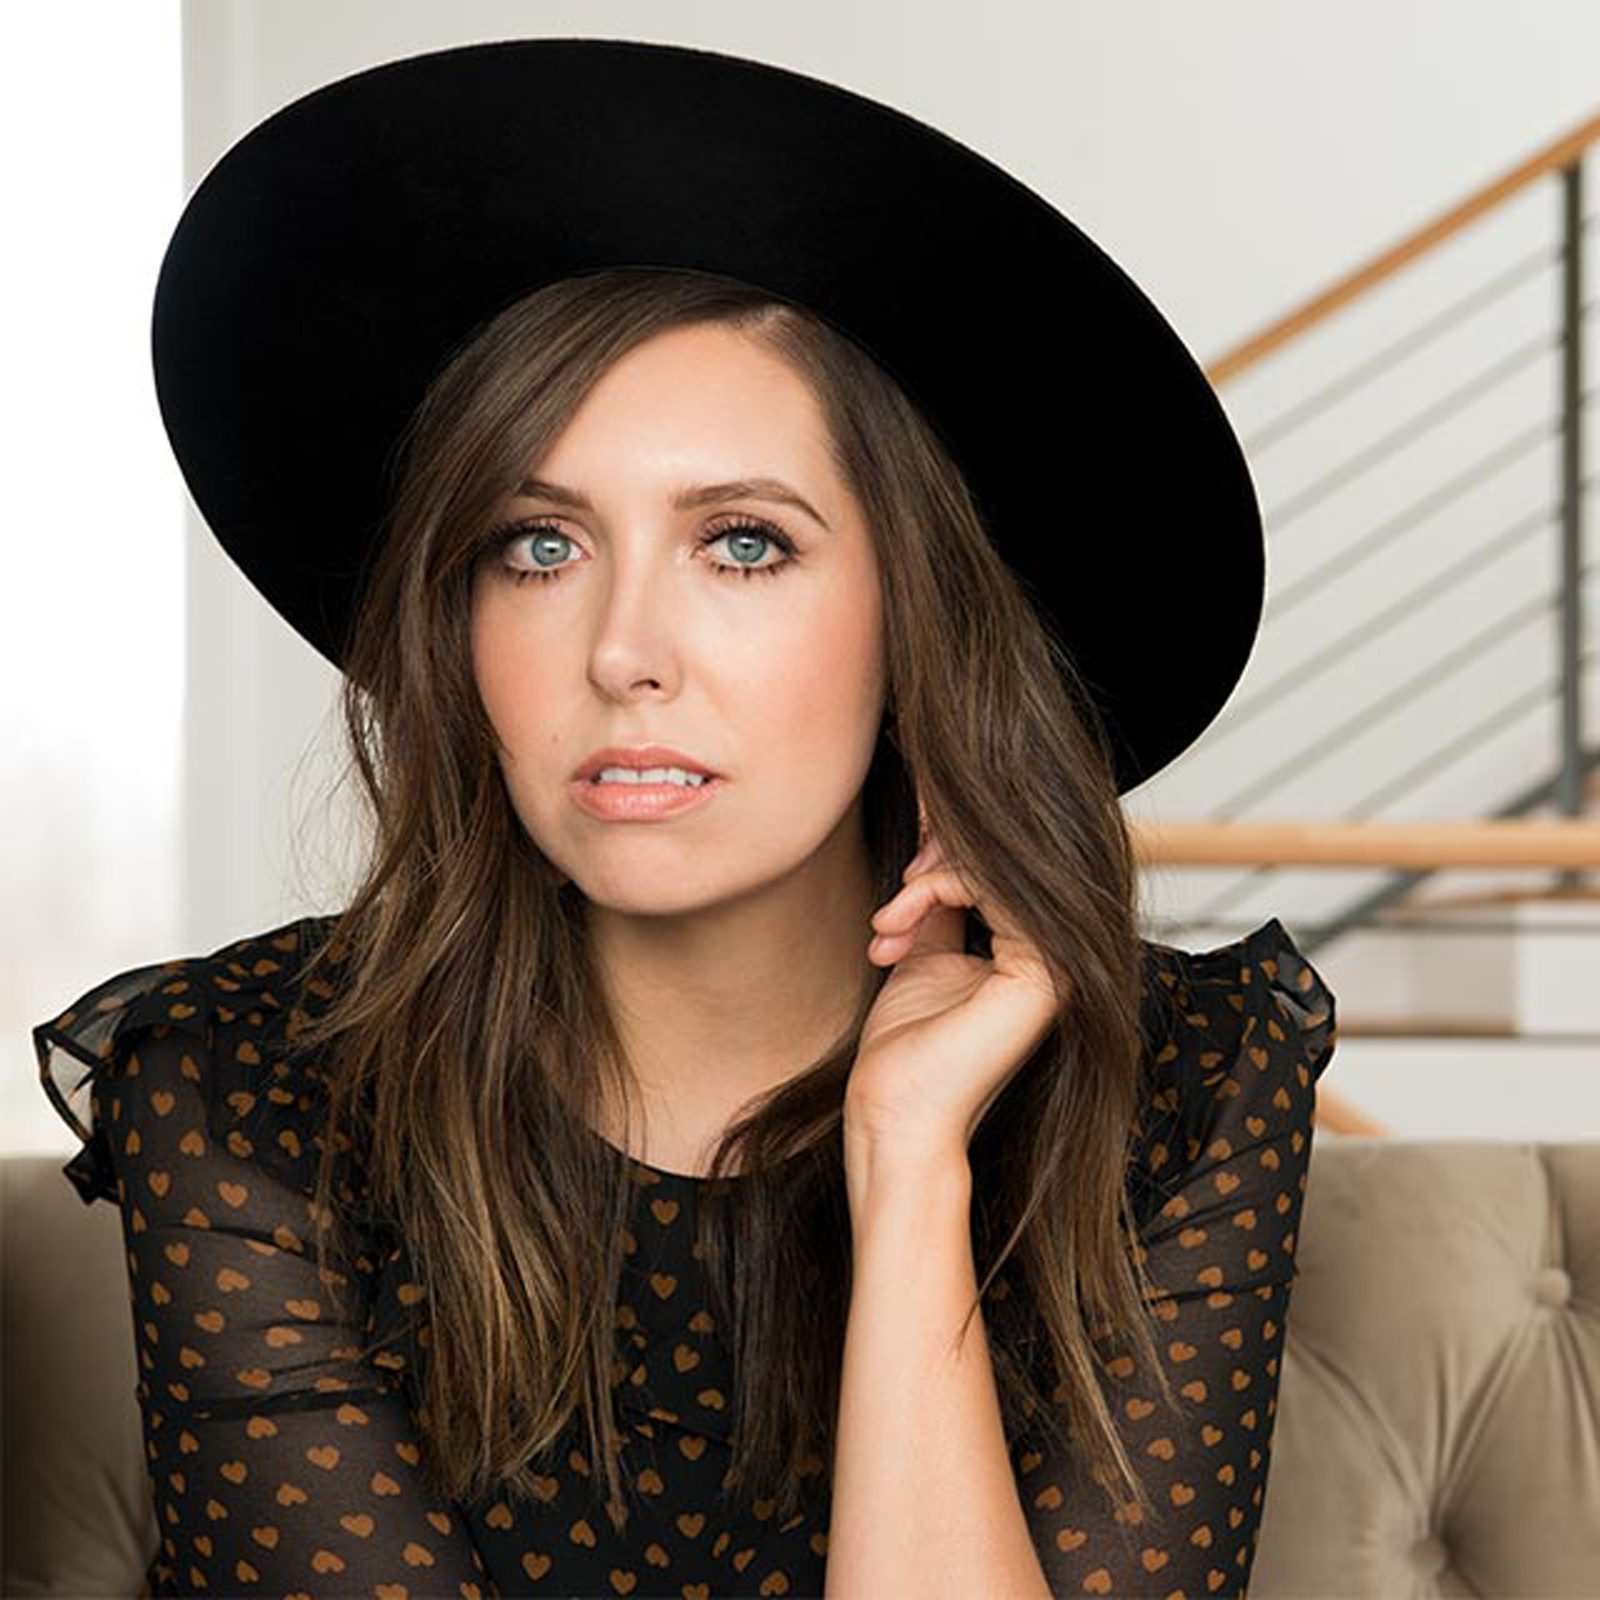 Music Review: Francesca Battistelli And Breaking Up With Fear